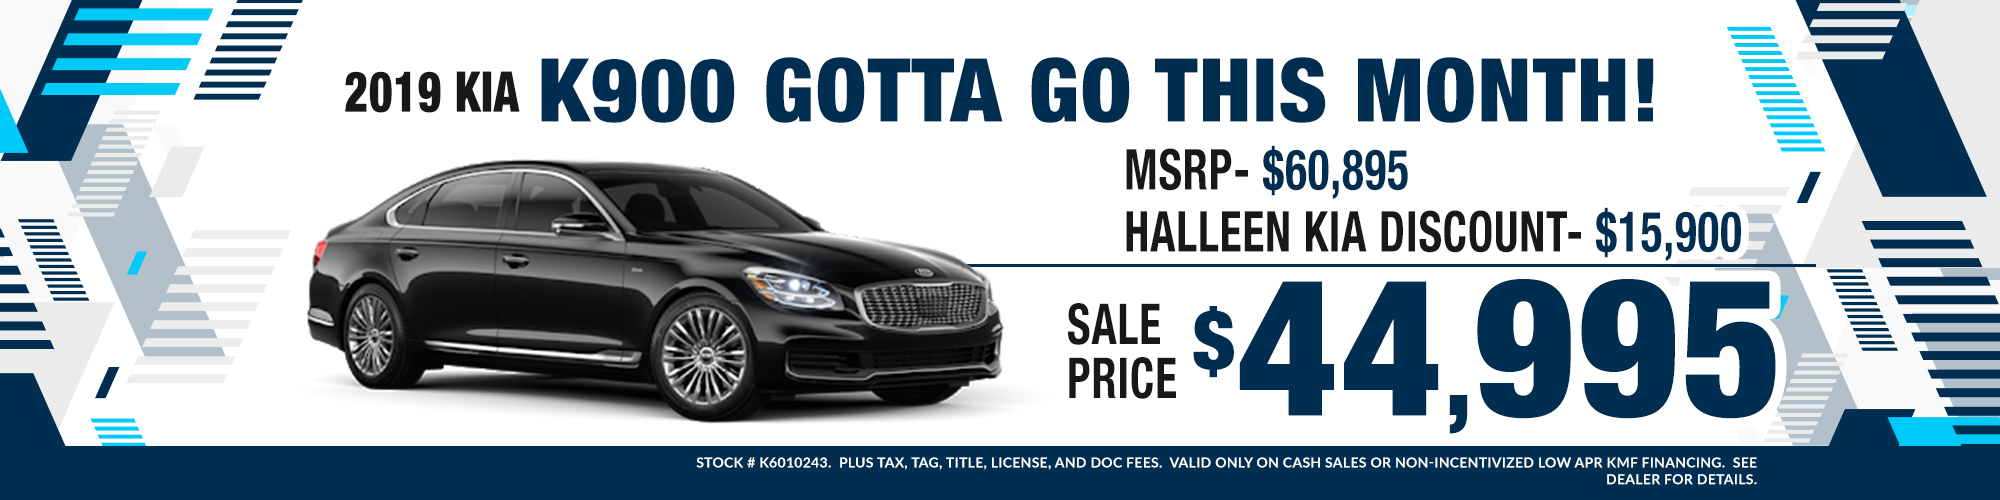 2019 K900 GOTTA GO THIS MONTH! MSRP- $60,895-HALLEEN KIA DISCOUNT- $15,900-SALE PRICE- $44,995